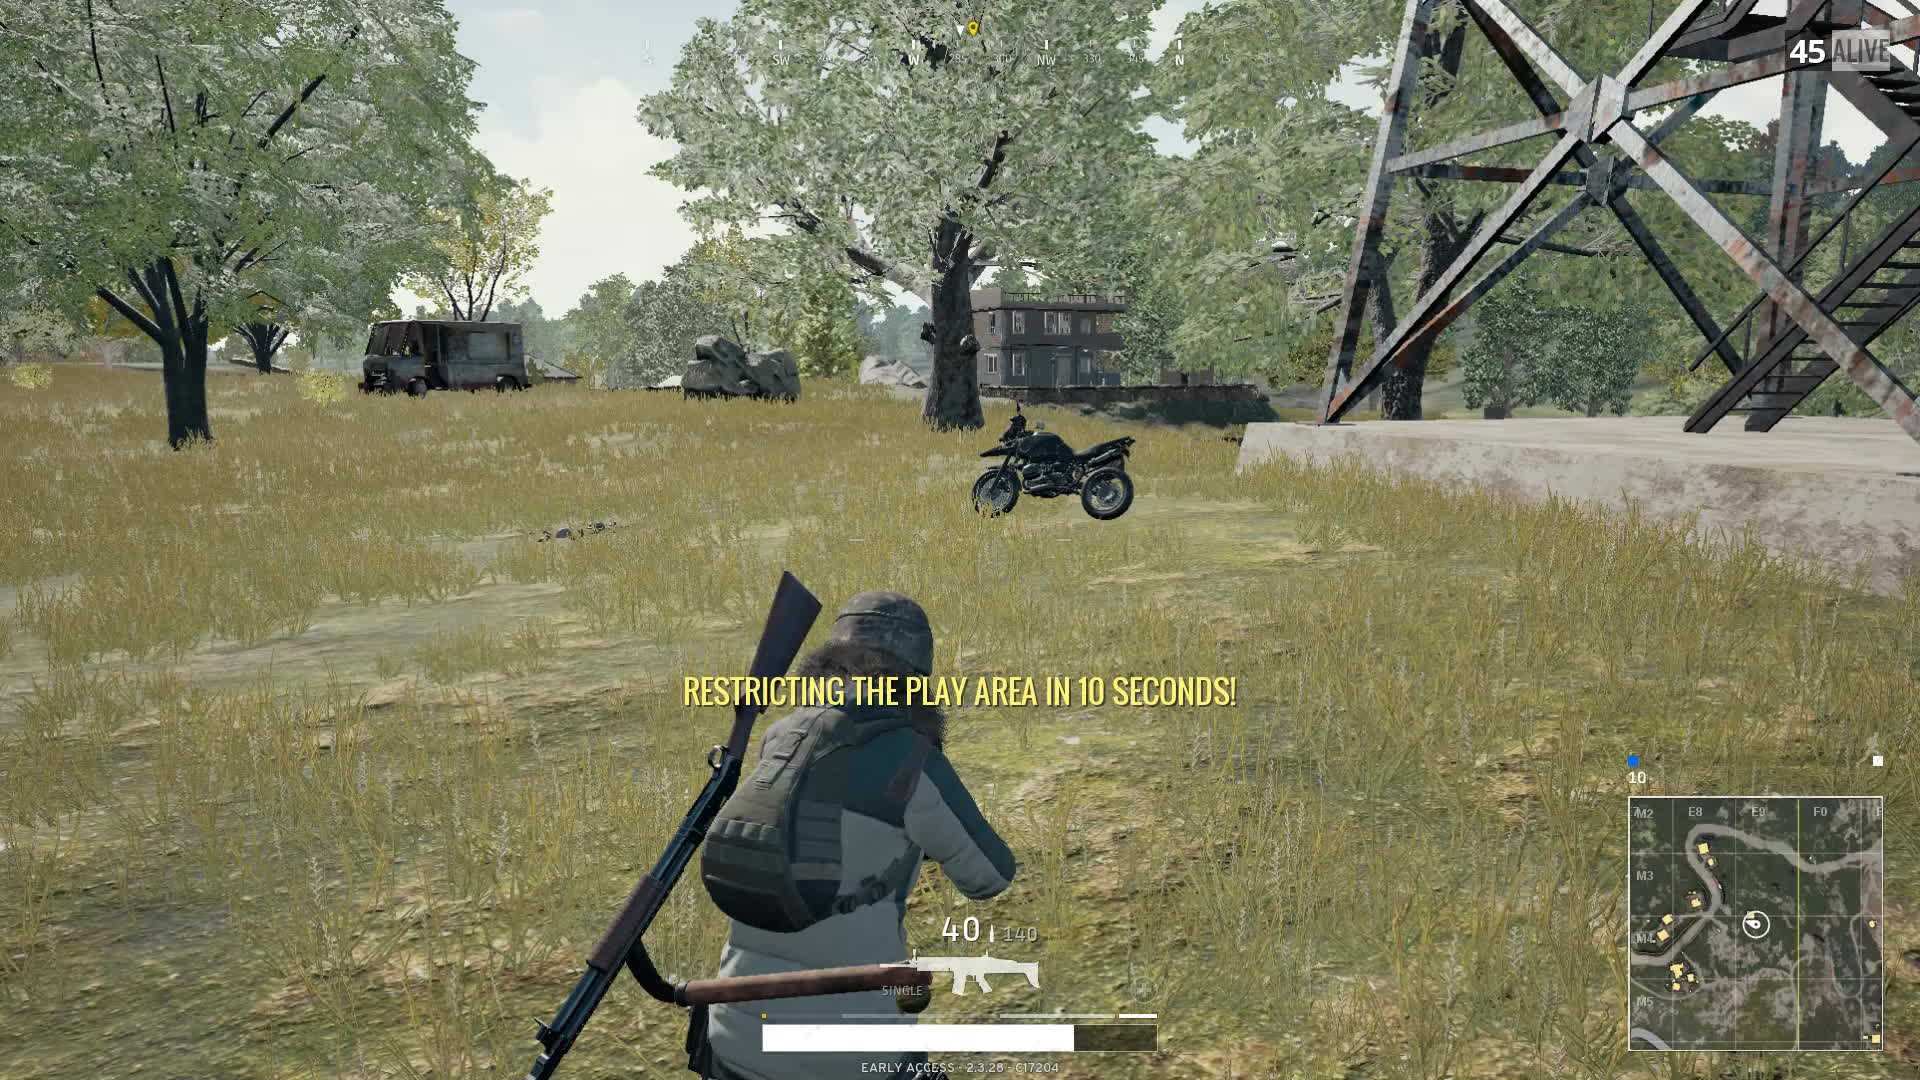 battlegrounds, pubg, Motorcycles are crazy GIFs